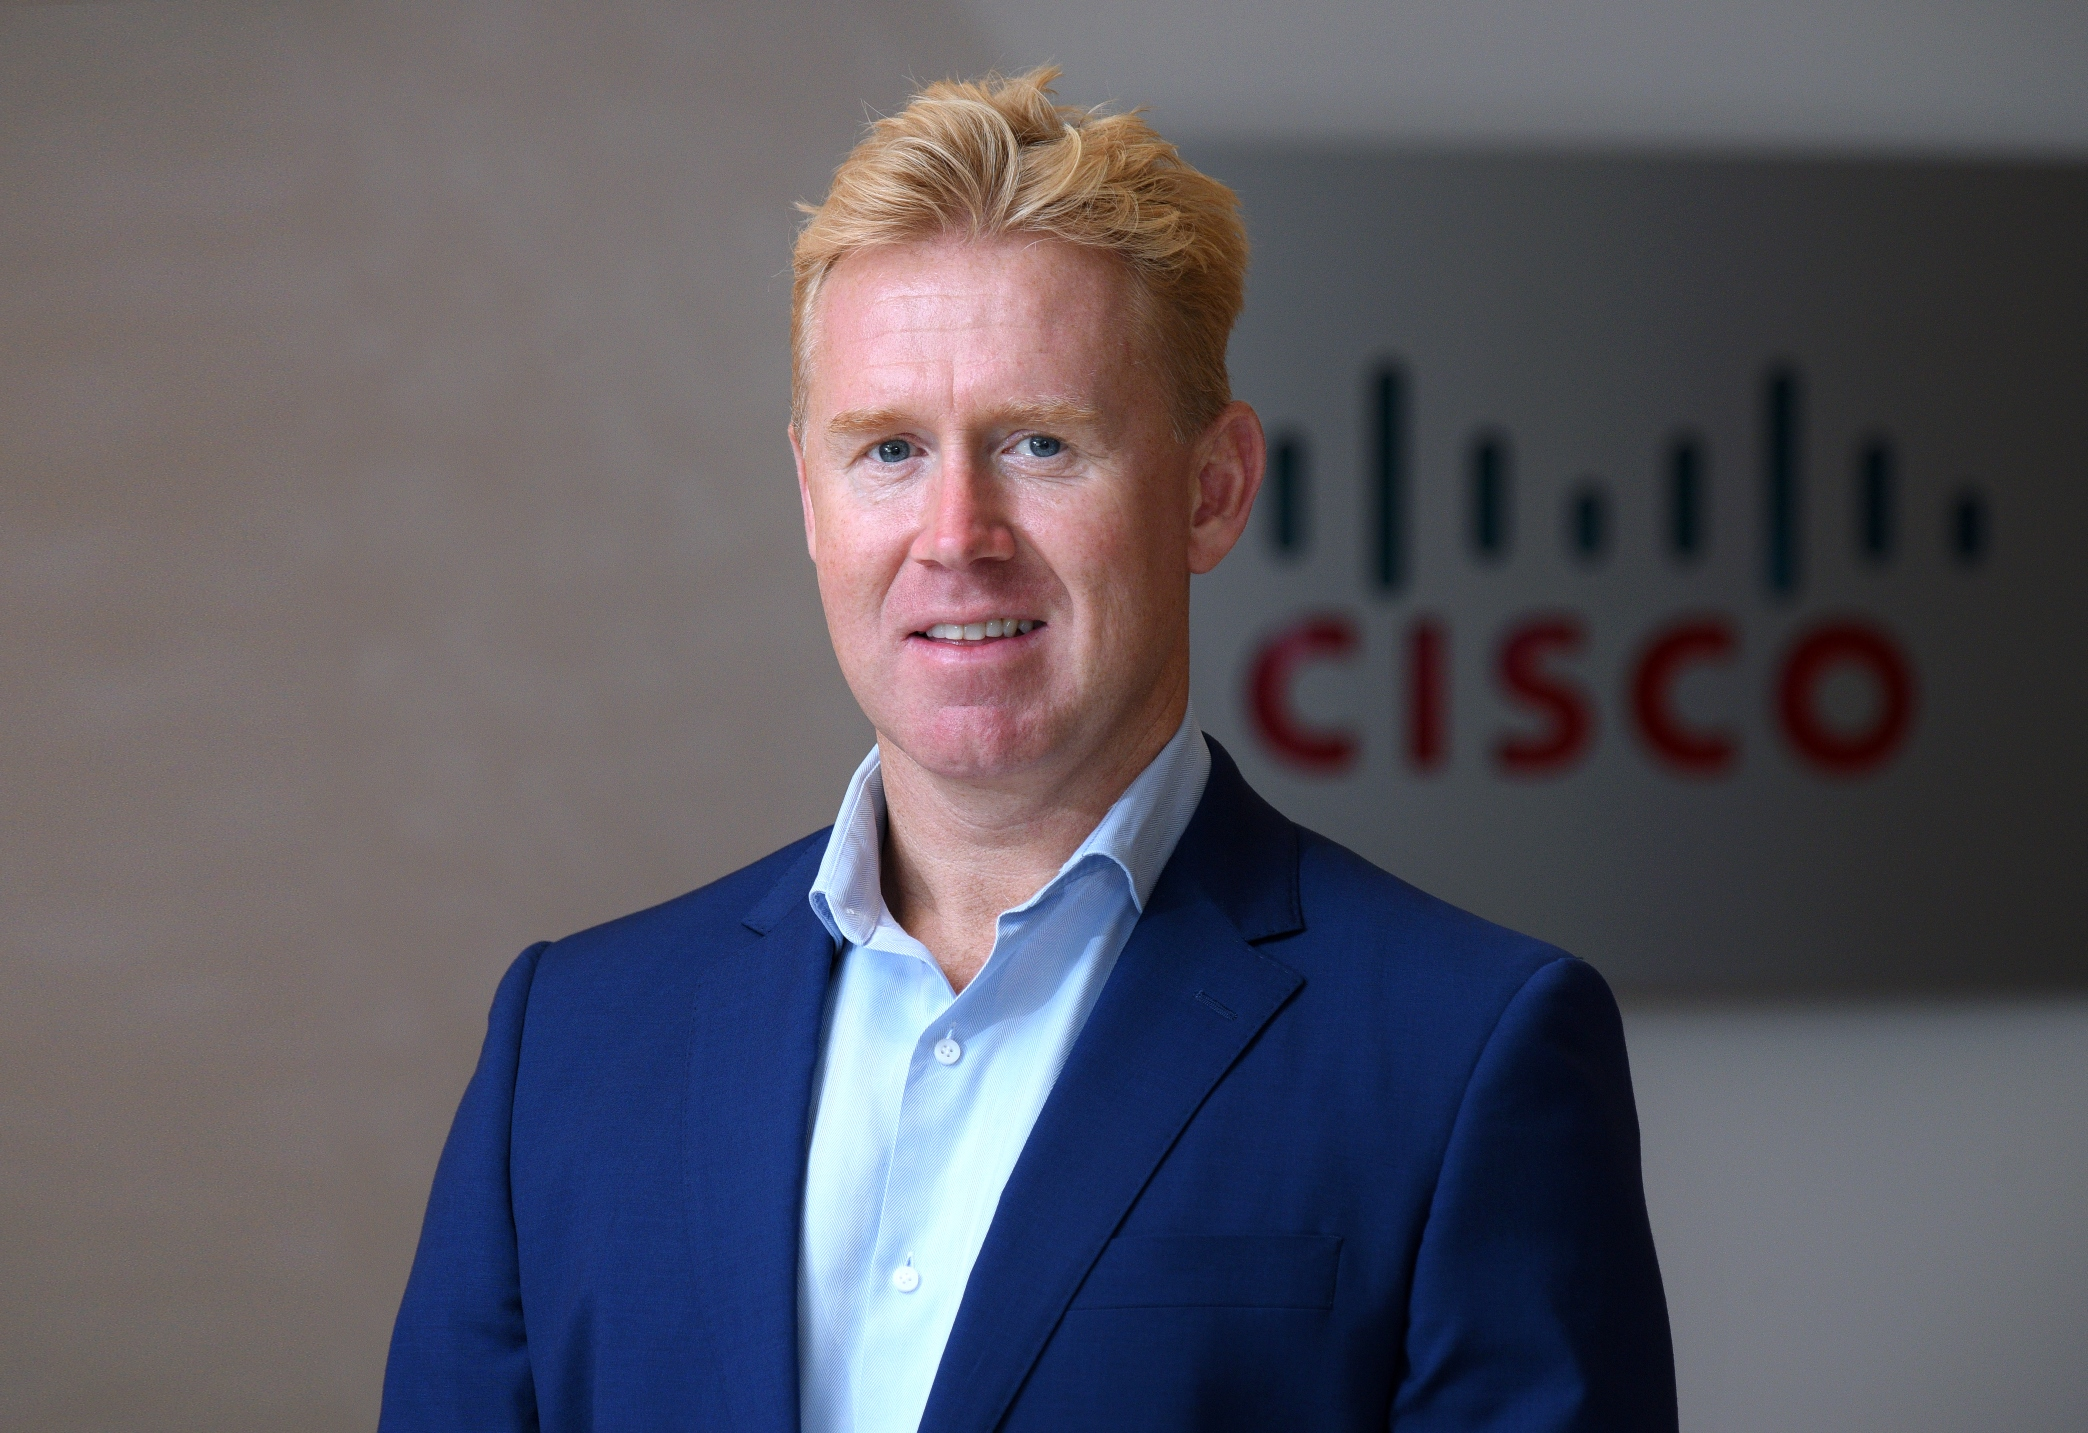 scott-manson-cyber-security-leader-for-middle-east-and-turkey-cisco_17